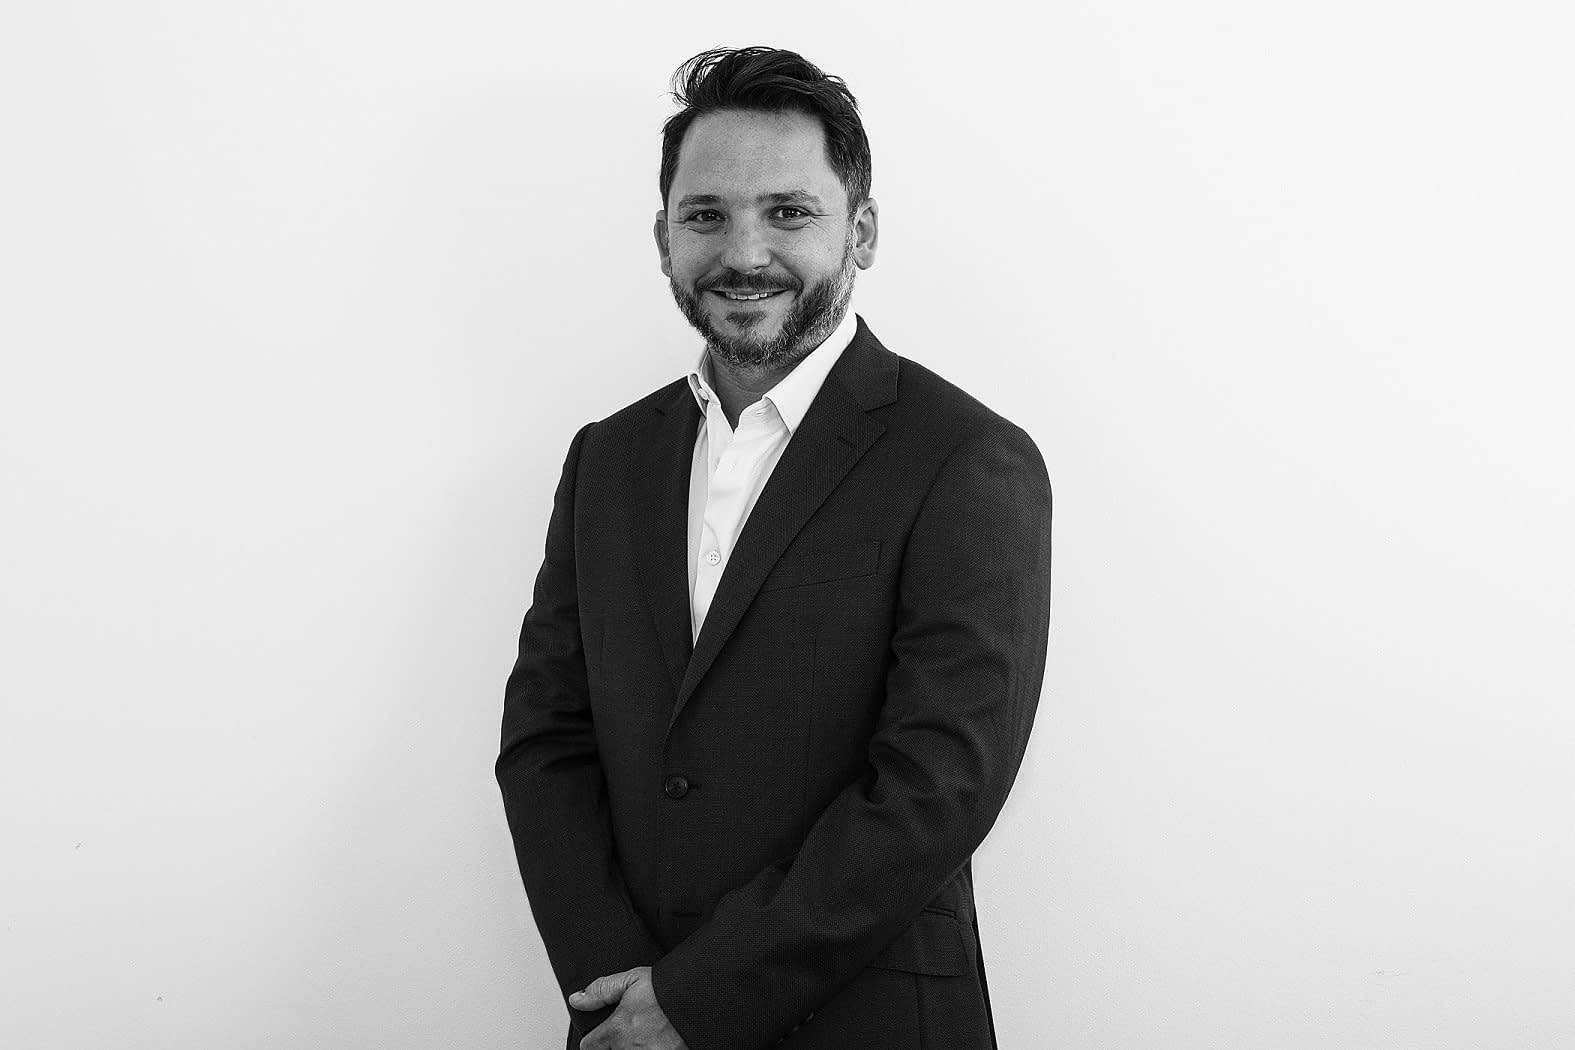 Graham Rodford, CEO of Archax Exchange - Interview Series